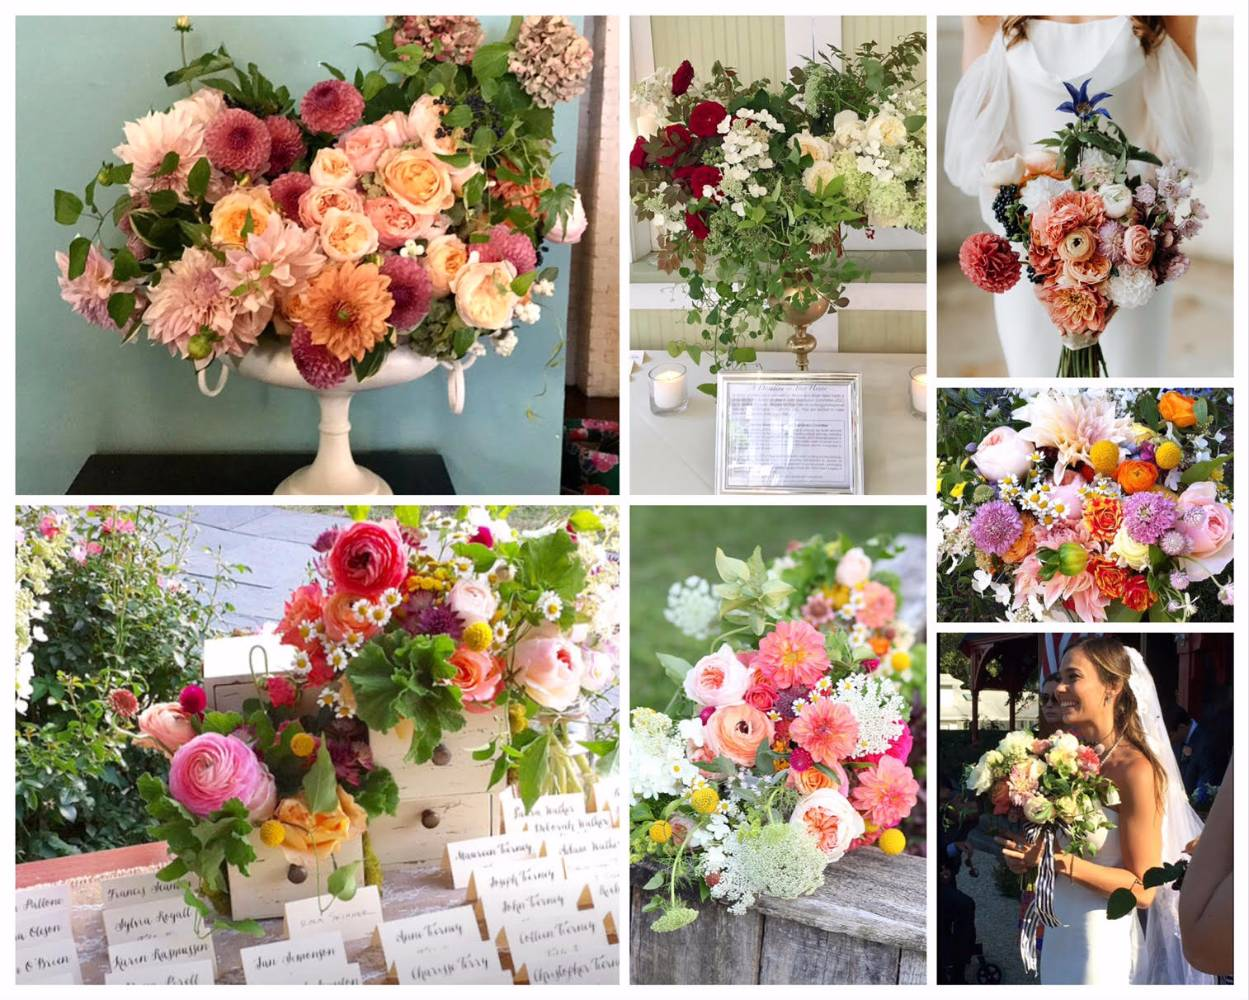 Guests Commented That The Flowers Are The Most Beautiful And